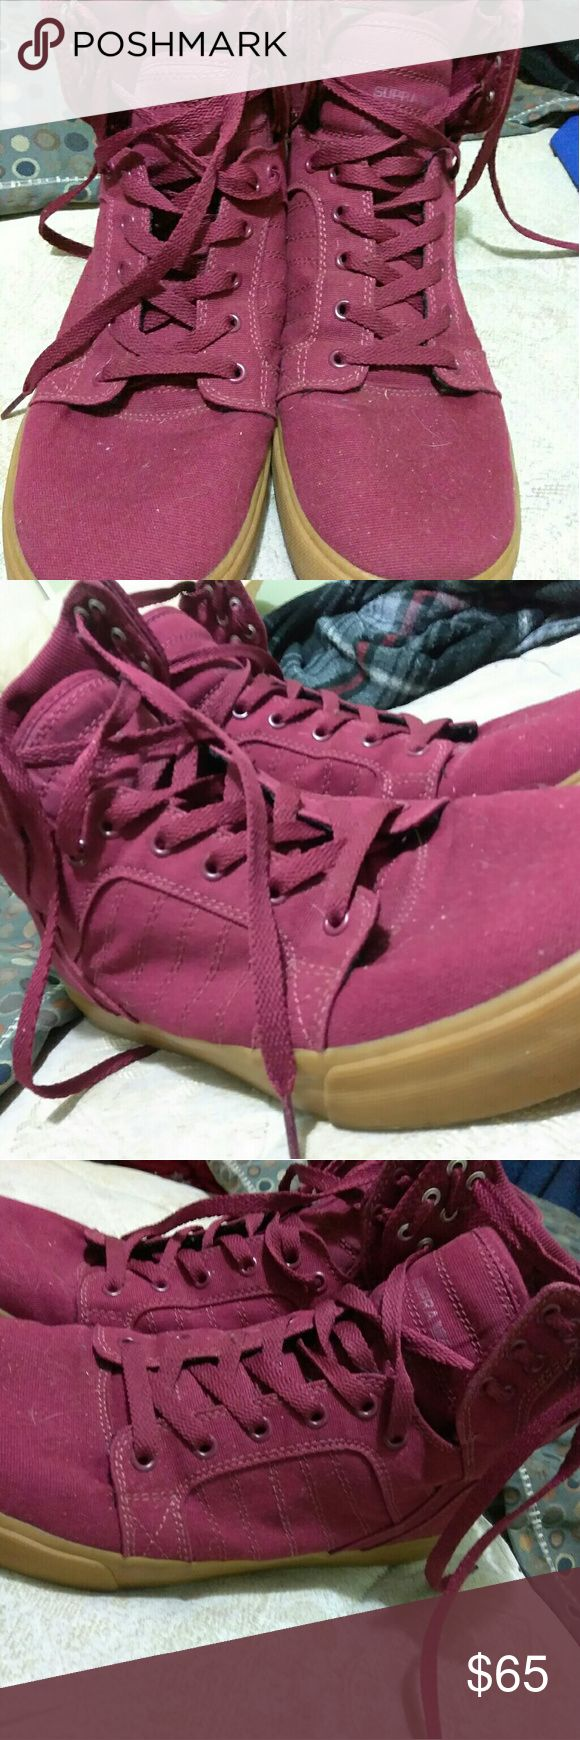 Supra Muska 001 size 11.5 Little to no wear and tear no box used it for a fire starter Supra Shoes Sneakers